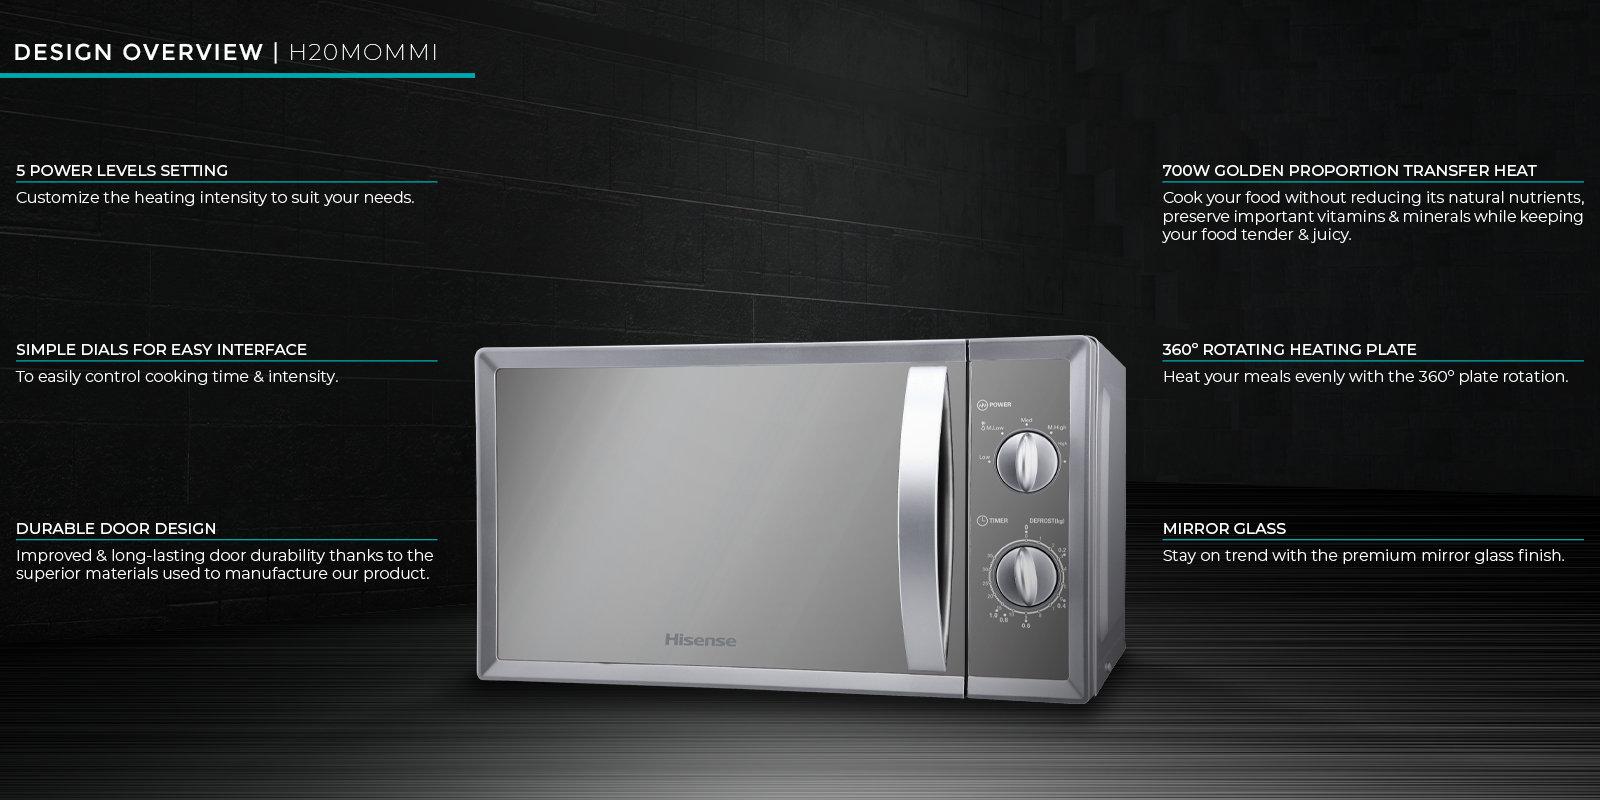 Hisense 20-litre Microwave H20MOMMI - 700 watts microwave power, Mirror Glass finish, 5 power levels setting, Durable door design